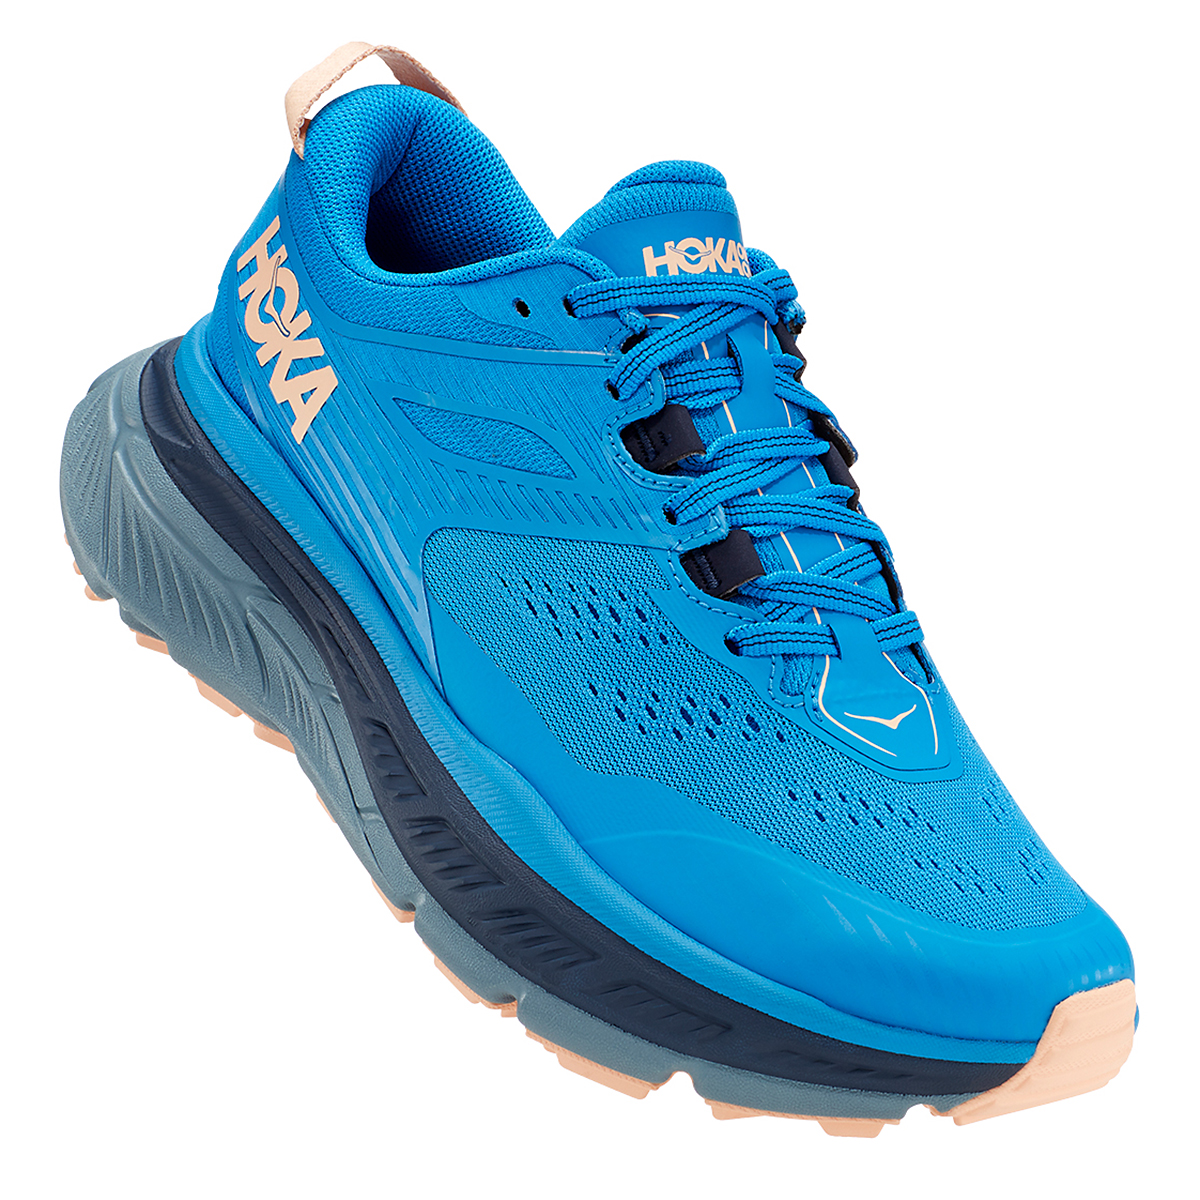 Women's Hoka One One Stinson Atr 6 Trail Running Shoe - Color: Indigo Bunting/Bleached Apricot - Size: 5 - Width: Regular, Indigo Bunting/Bleached Apricot, large, image 4